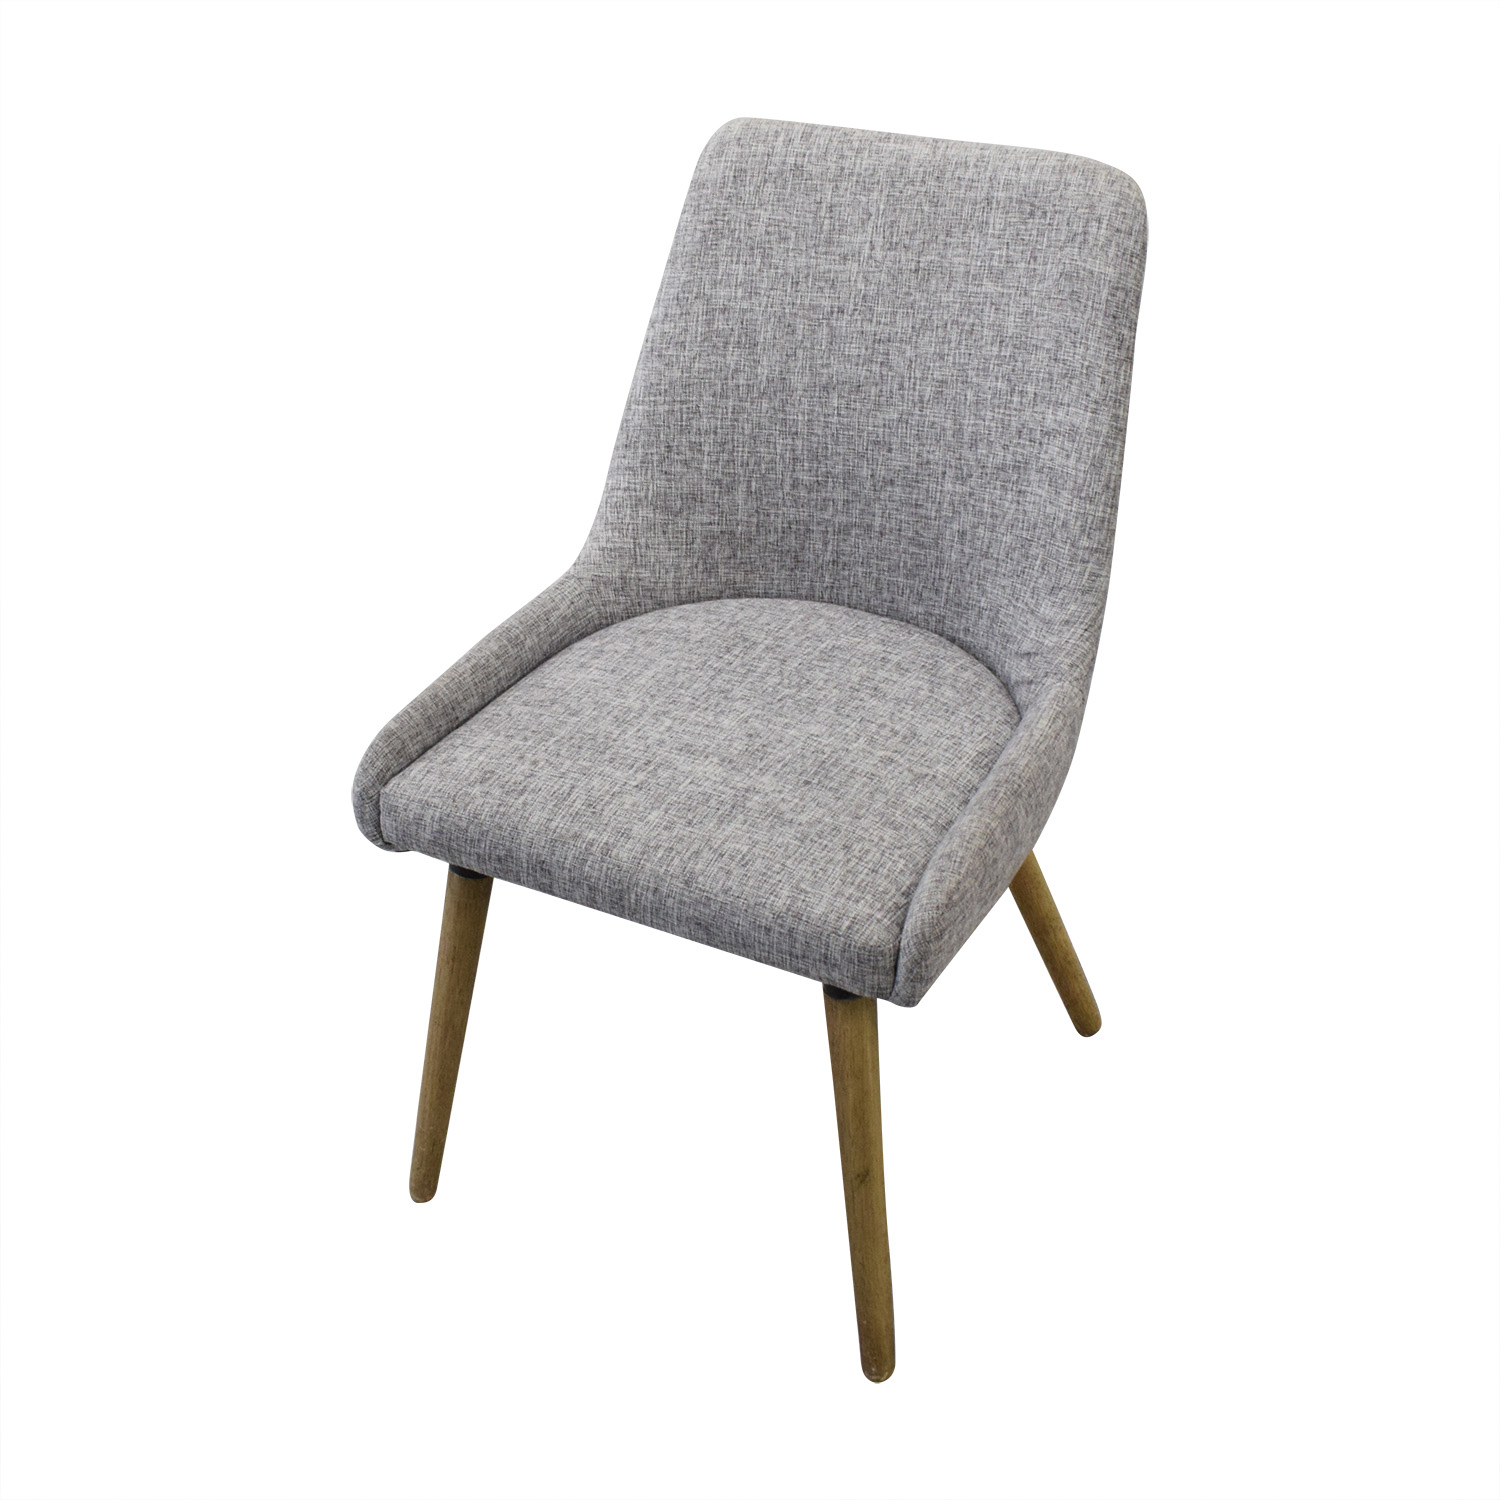 buy West Elm Mid-Century Upholstered Dining Chairs West Elm Dining Chairs